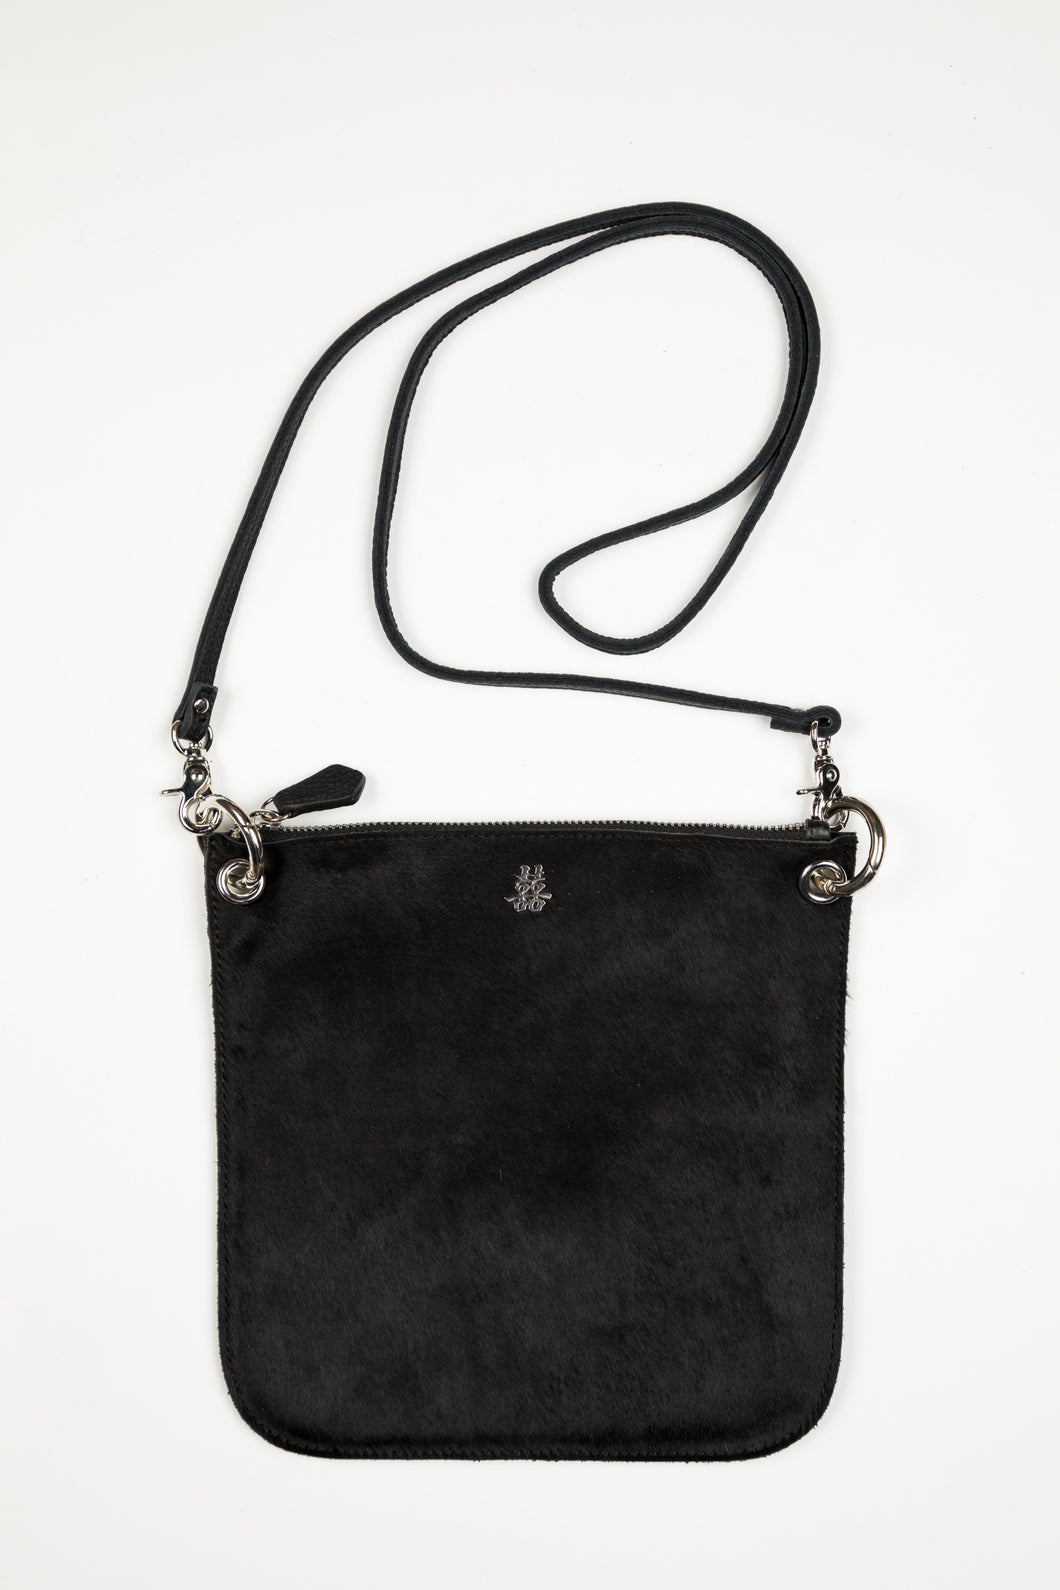 Happy Handbag / Black Pony with Silver Hardware